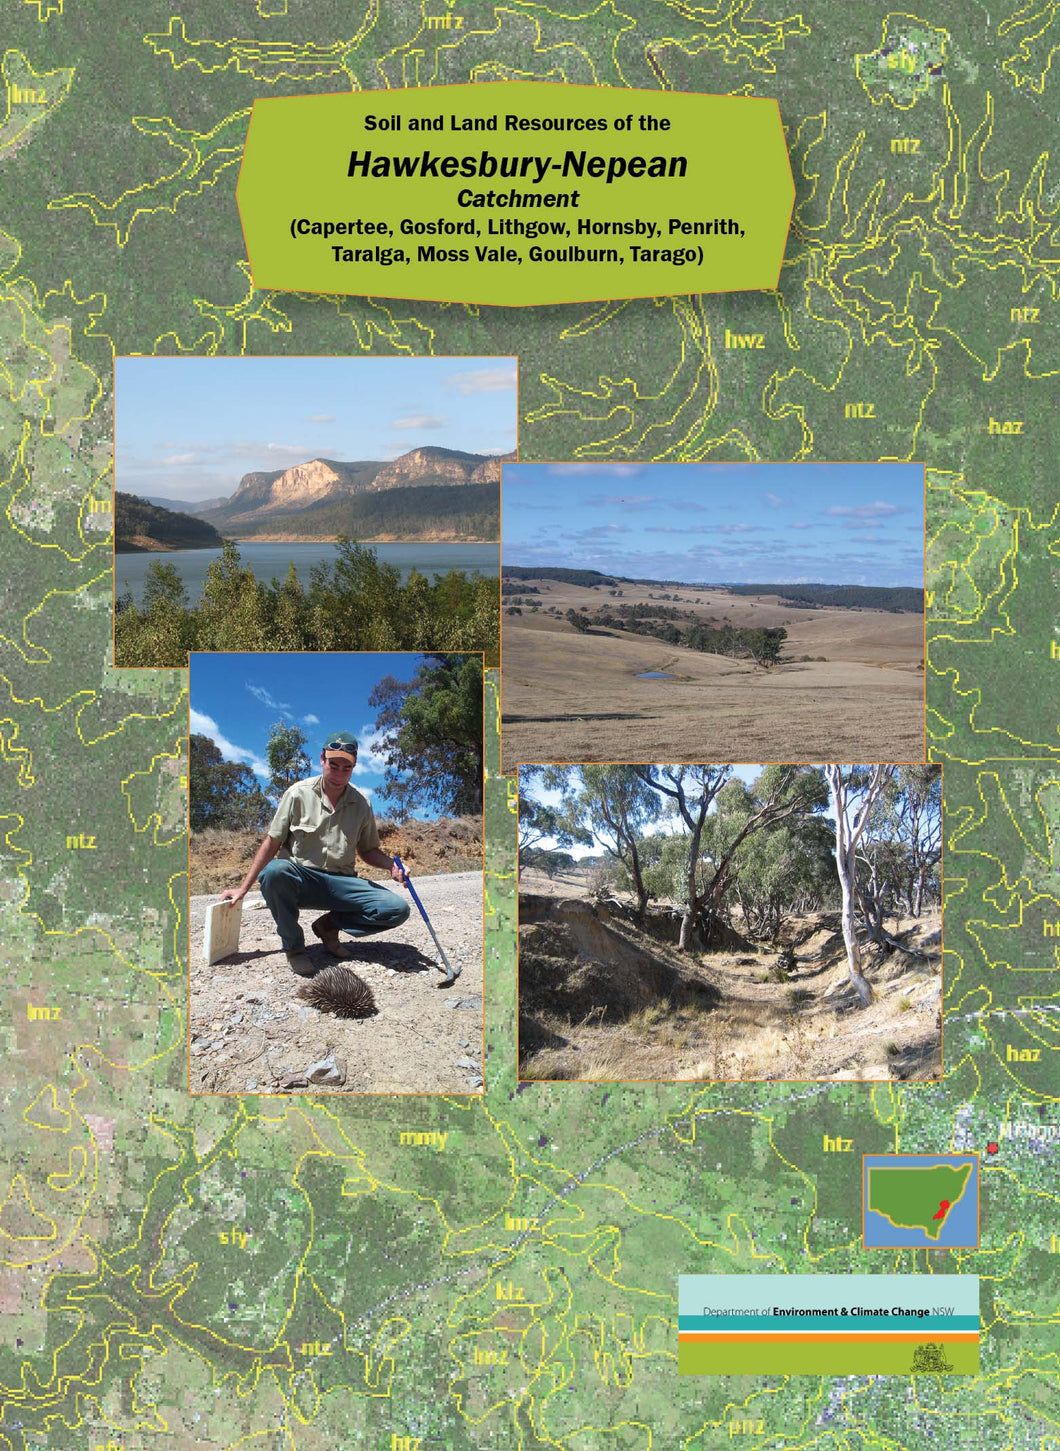 Soil and Land Resources of the Hawkesbury Nepean Catchment